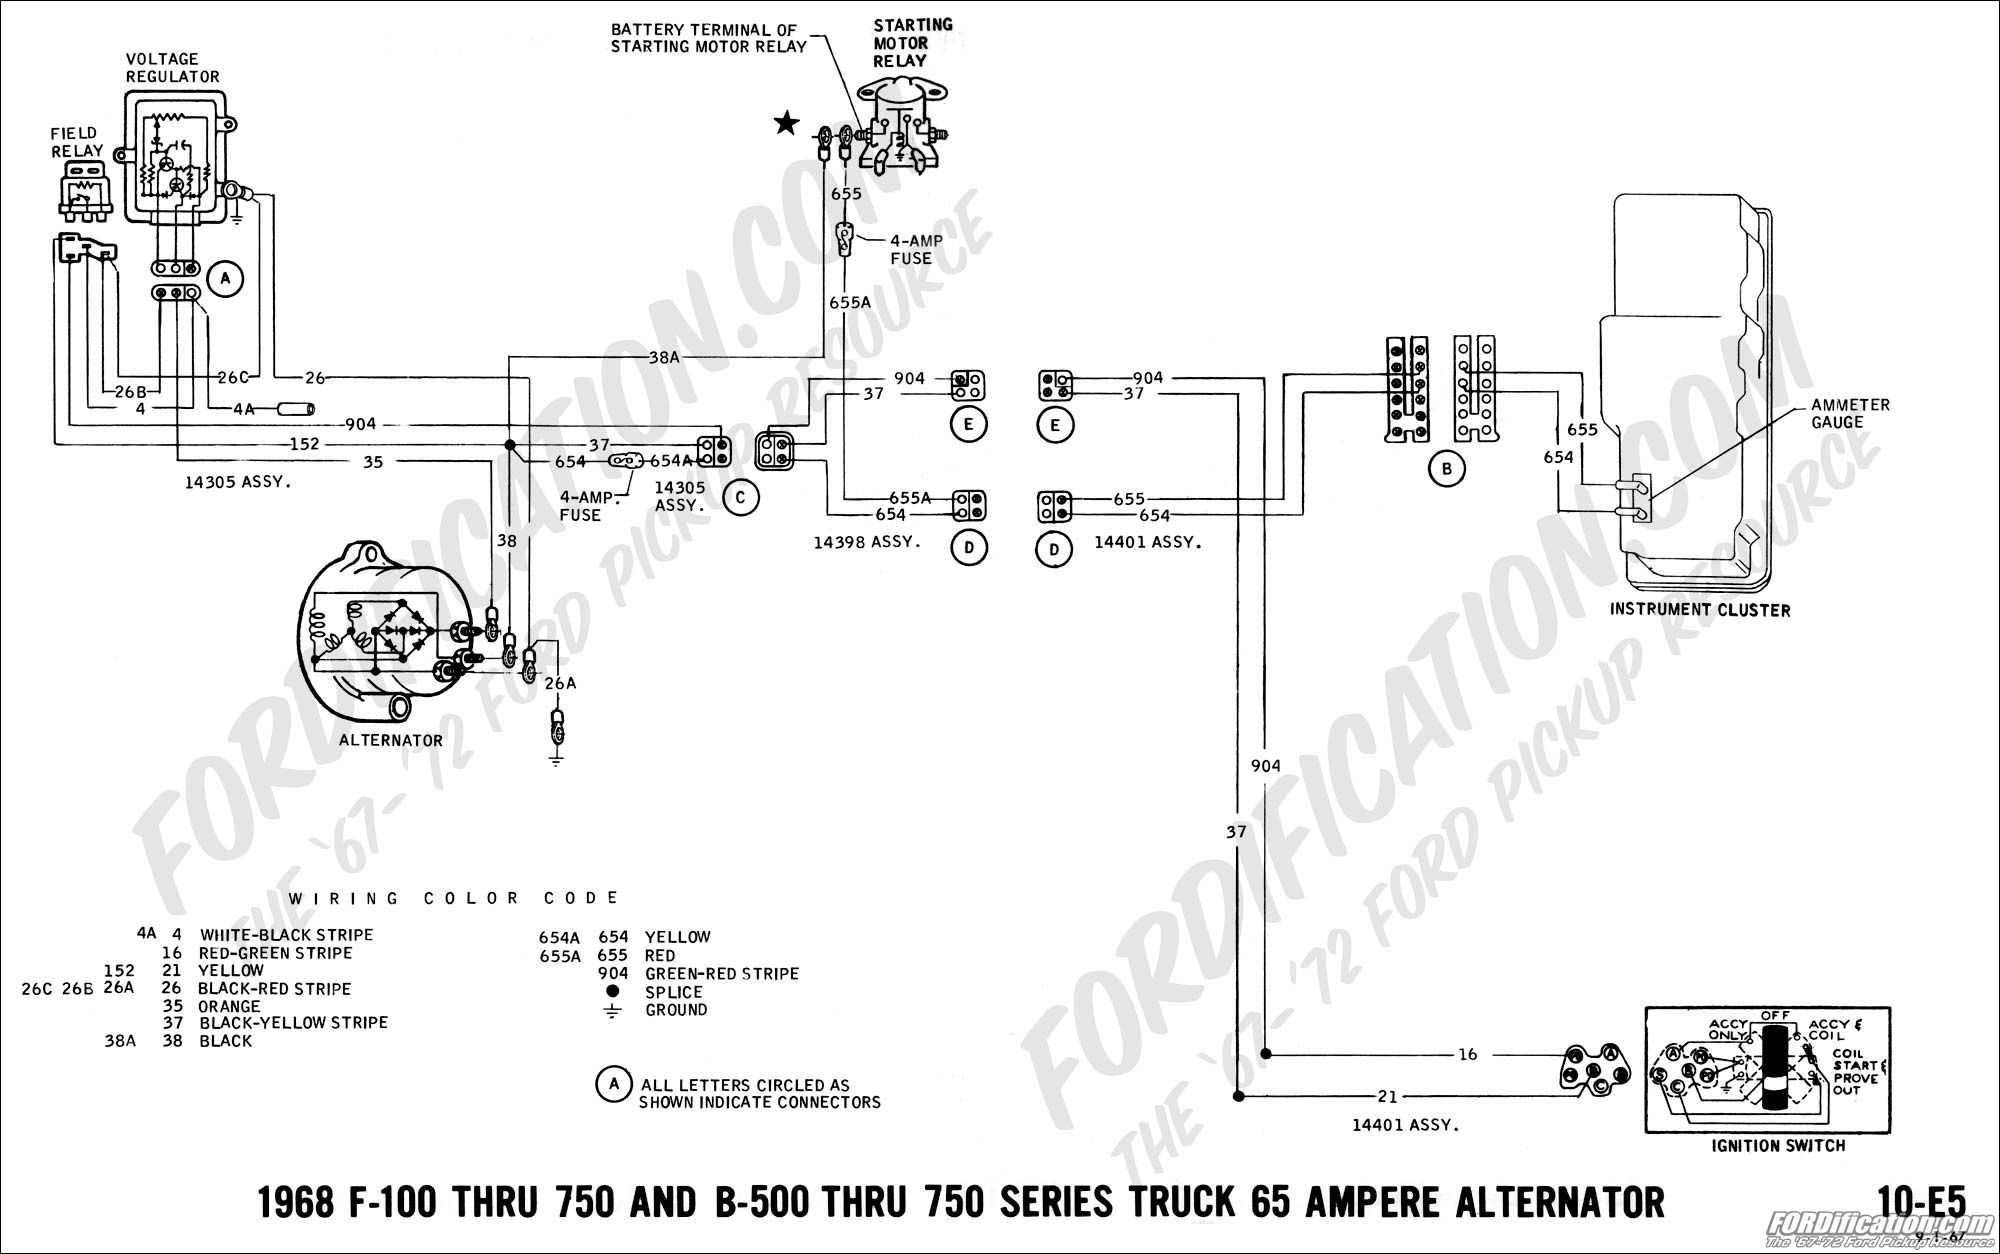 1968 F100 Wiring Diagram | Wiring Diagram Nissan Alternator Wiring Diagram on nissan brakes diagram, nissan alternator charging circuit, nissan forklift wiring diagram, nissan headlight wiring diagram, nissan battery diagram, nissan radio wiring diagram, nissan wiring harness diagram, 96 nissan pathfinder wiring diagram, nissan car stereo wiring diagram, nissan engine wiring diagram, nissan fuel injector wiring diagram, nissan relay wiring diagram, nissan murano alternator wiring, nissan 3.5 engine diagram, nissan maxima wiring diagram, 1997 nissan pathfinder wiring diagram, nissan trailer wiring diagram, nissan alternator parts, nissan frontier alternator diagram, 2013 nissan frontier wiring diagram,